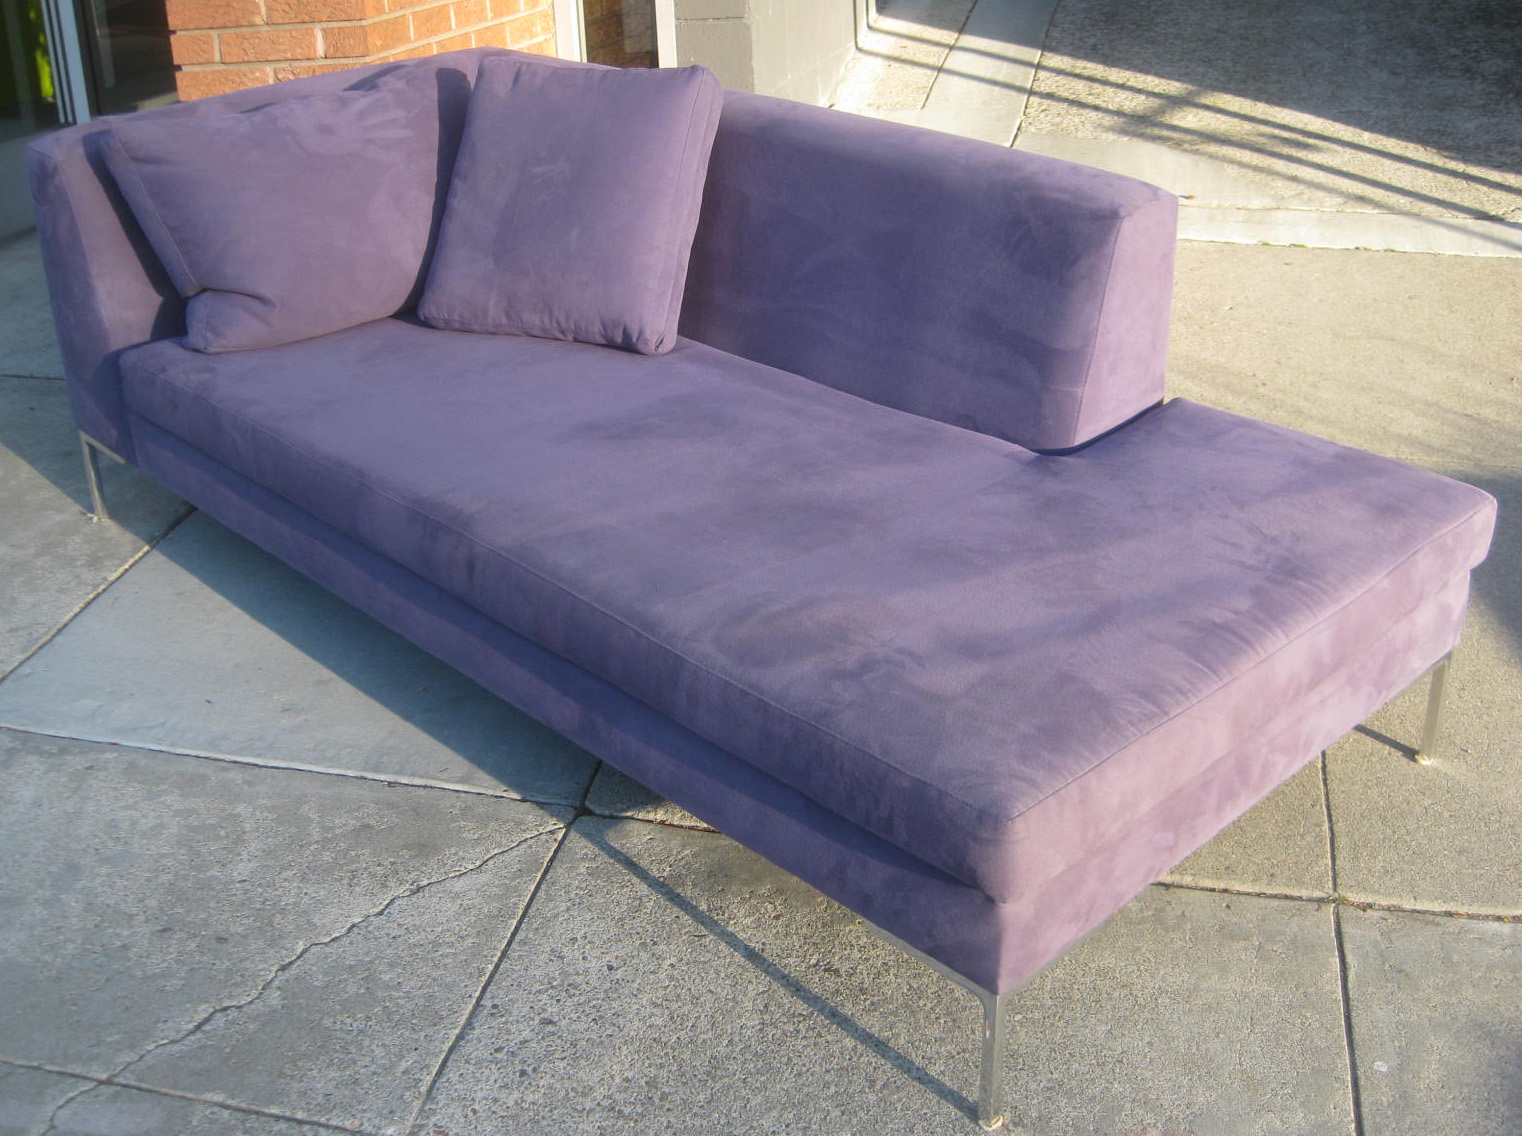 purple chaise lounge chair office covers online india uhuru furniture and collectibles sold